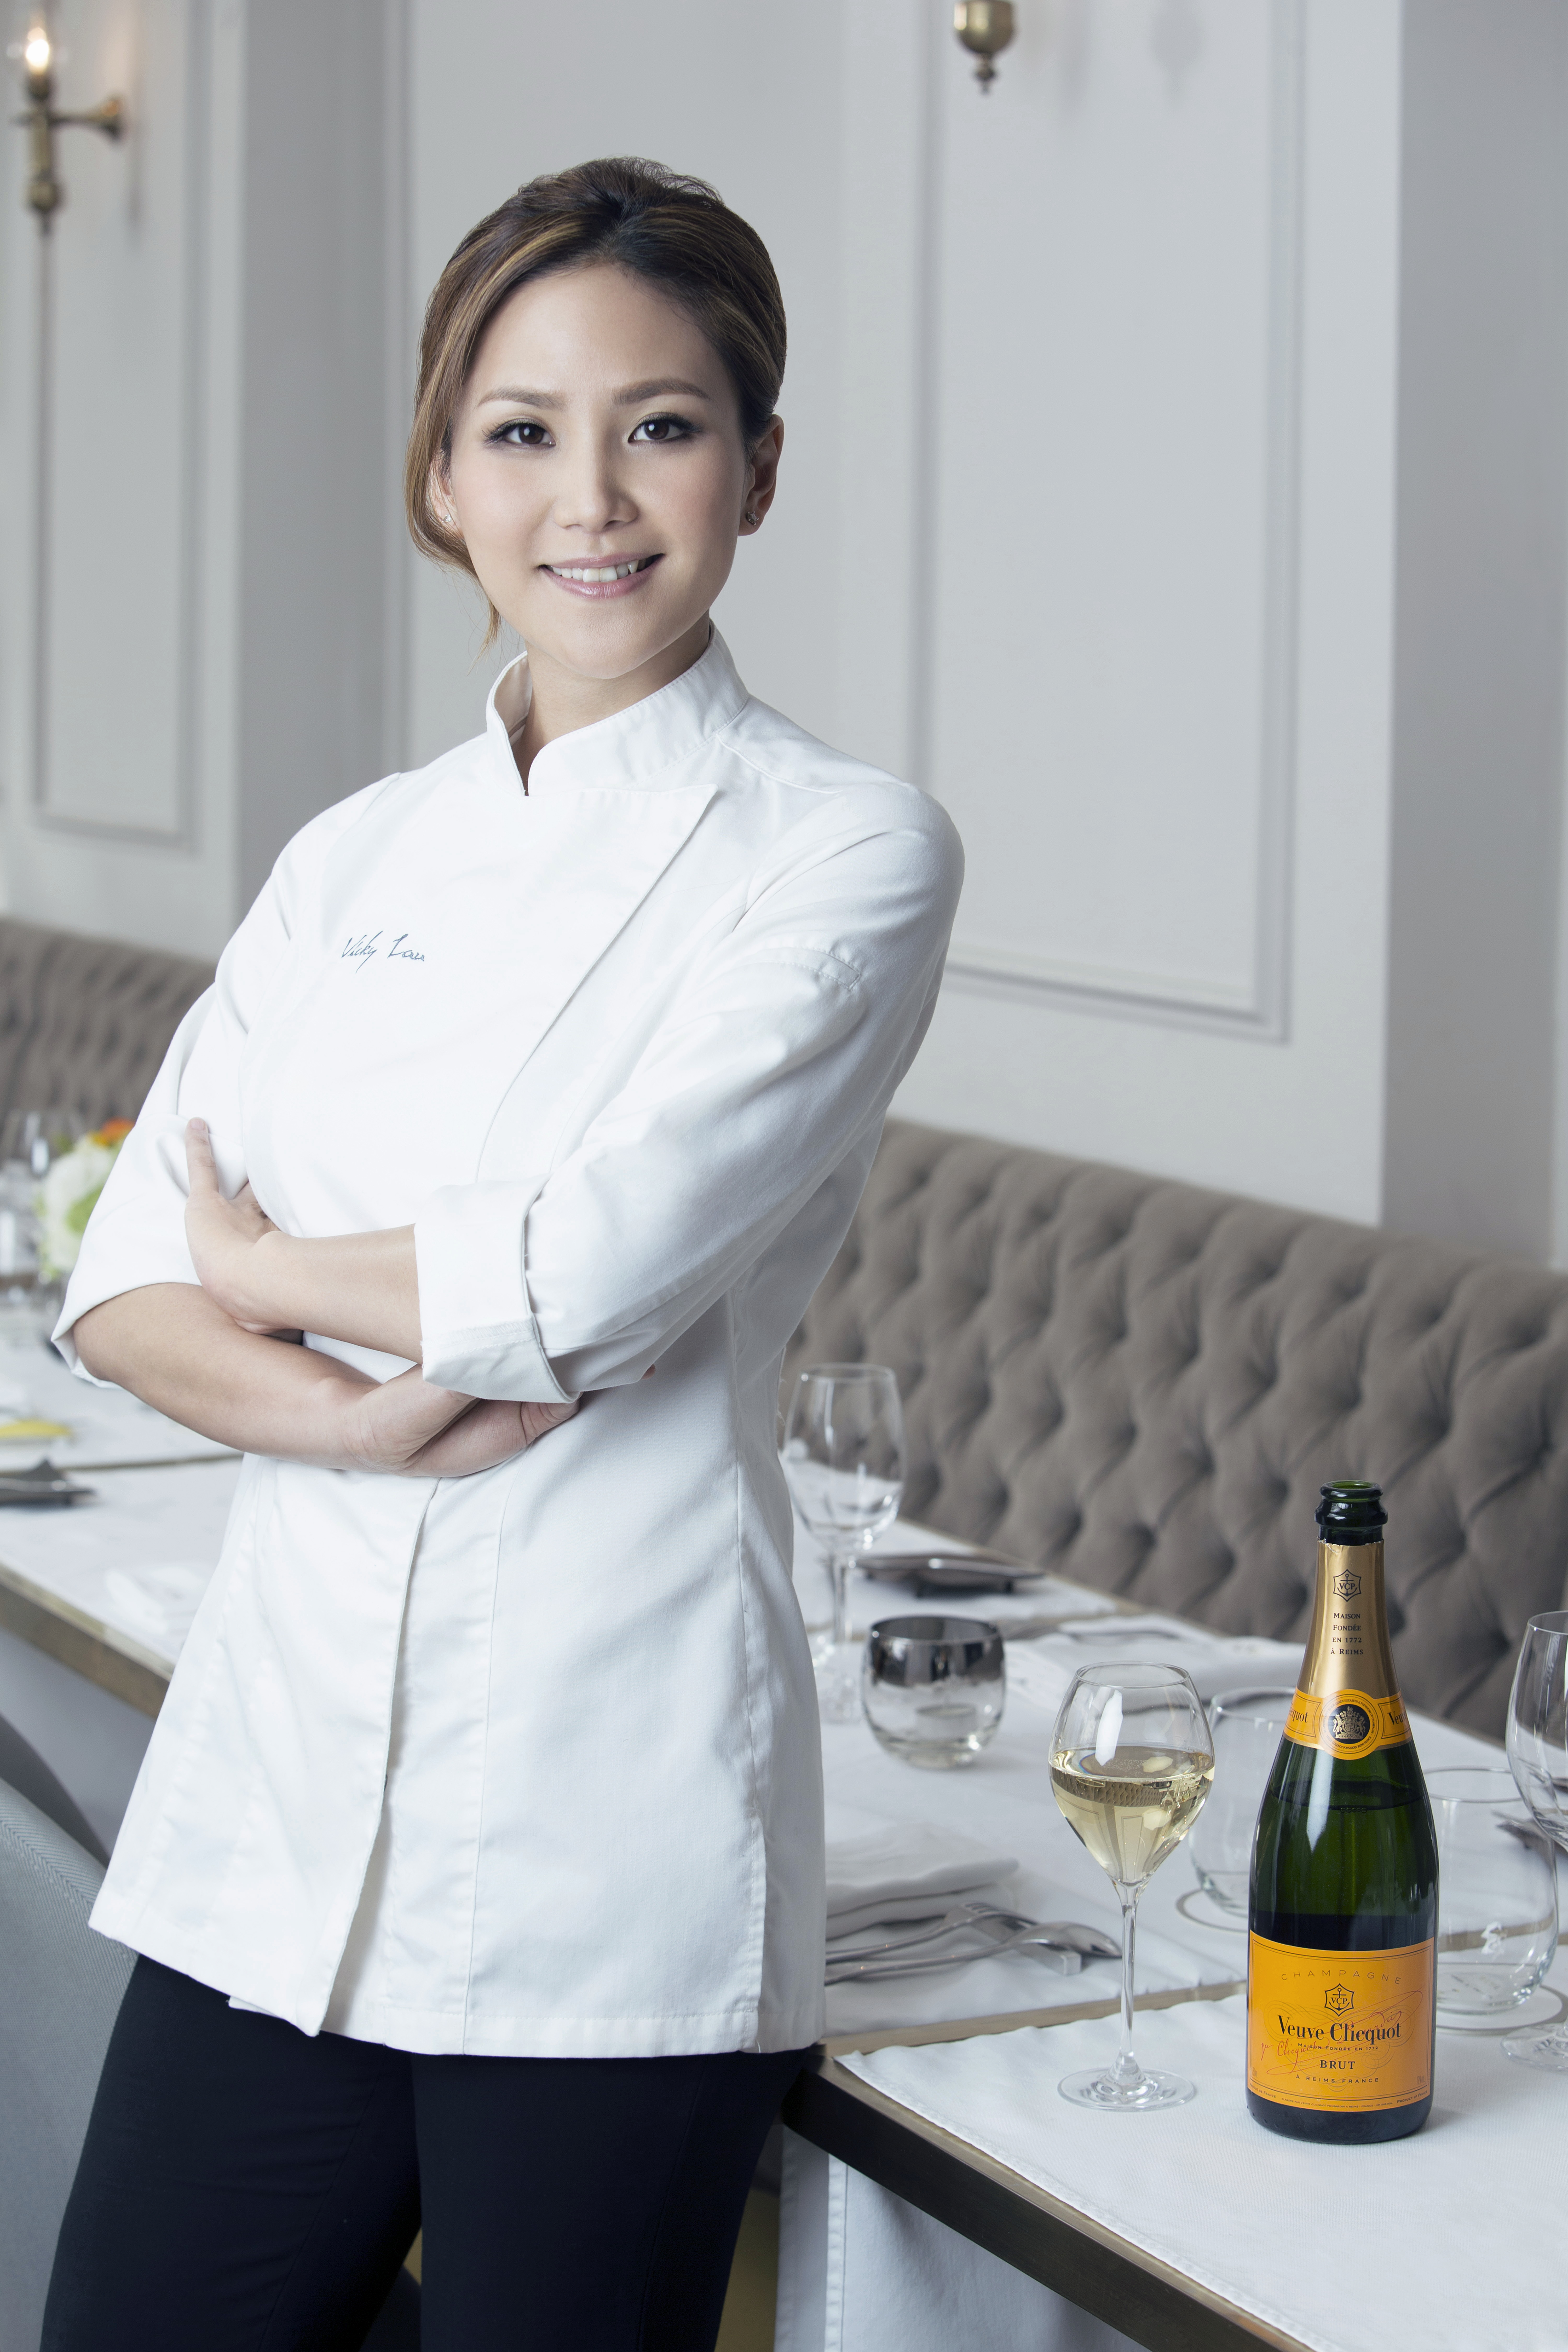 Is A Woman\'s Place in the Professional Kitchen? | Chopstix & the City